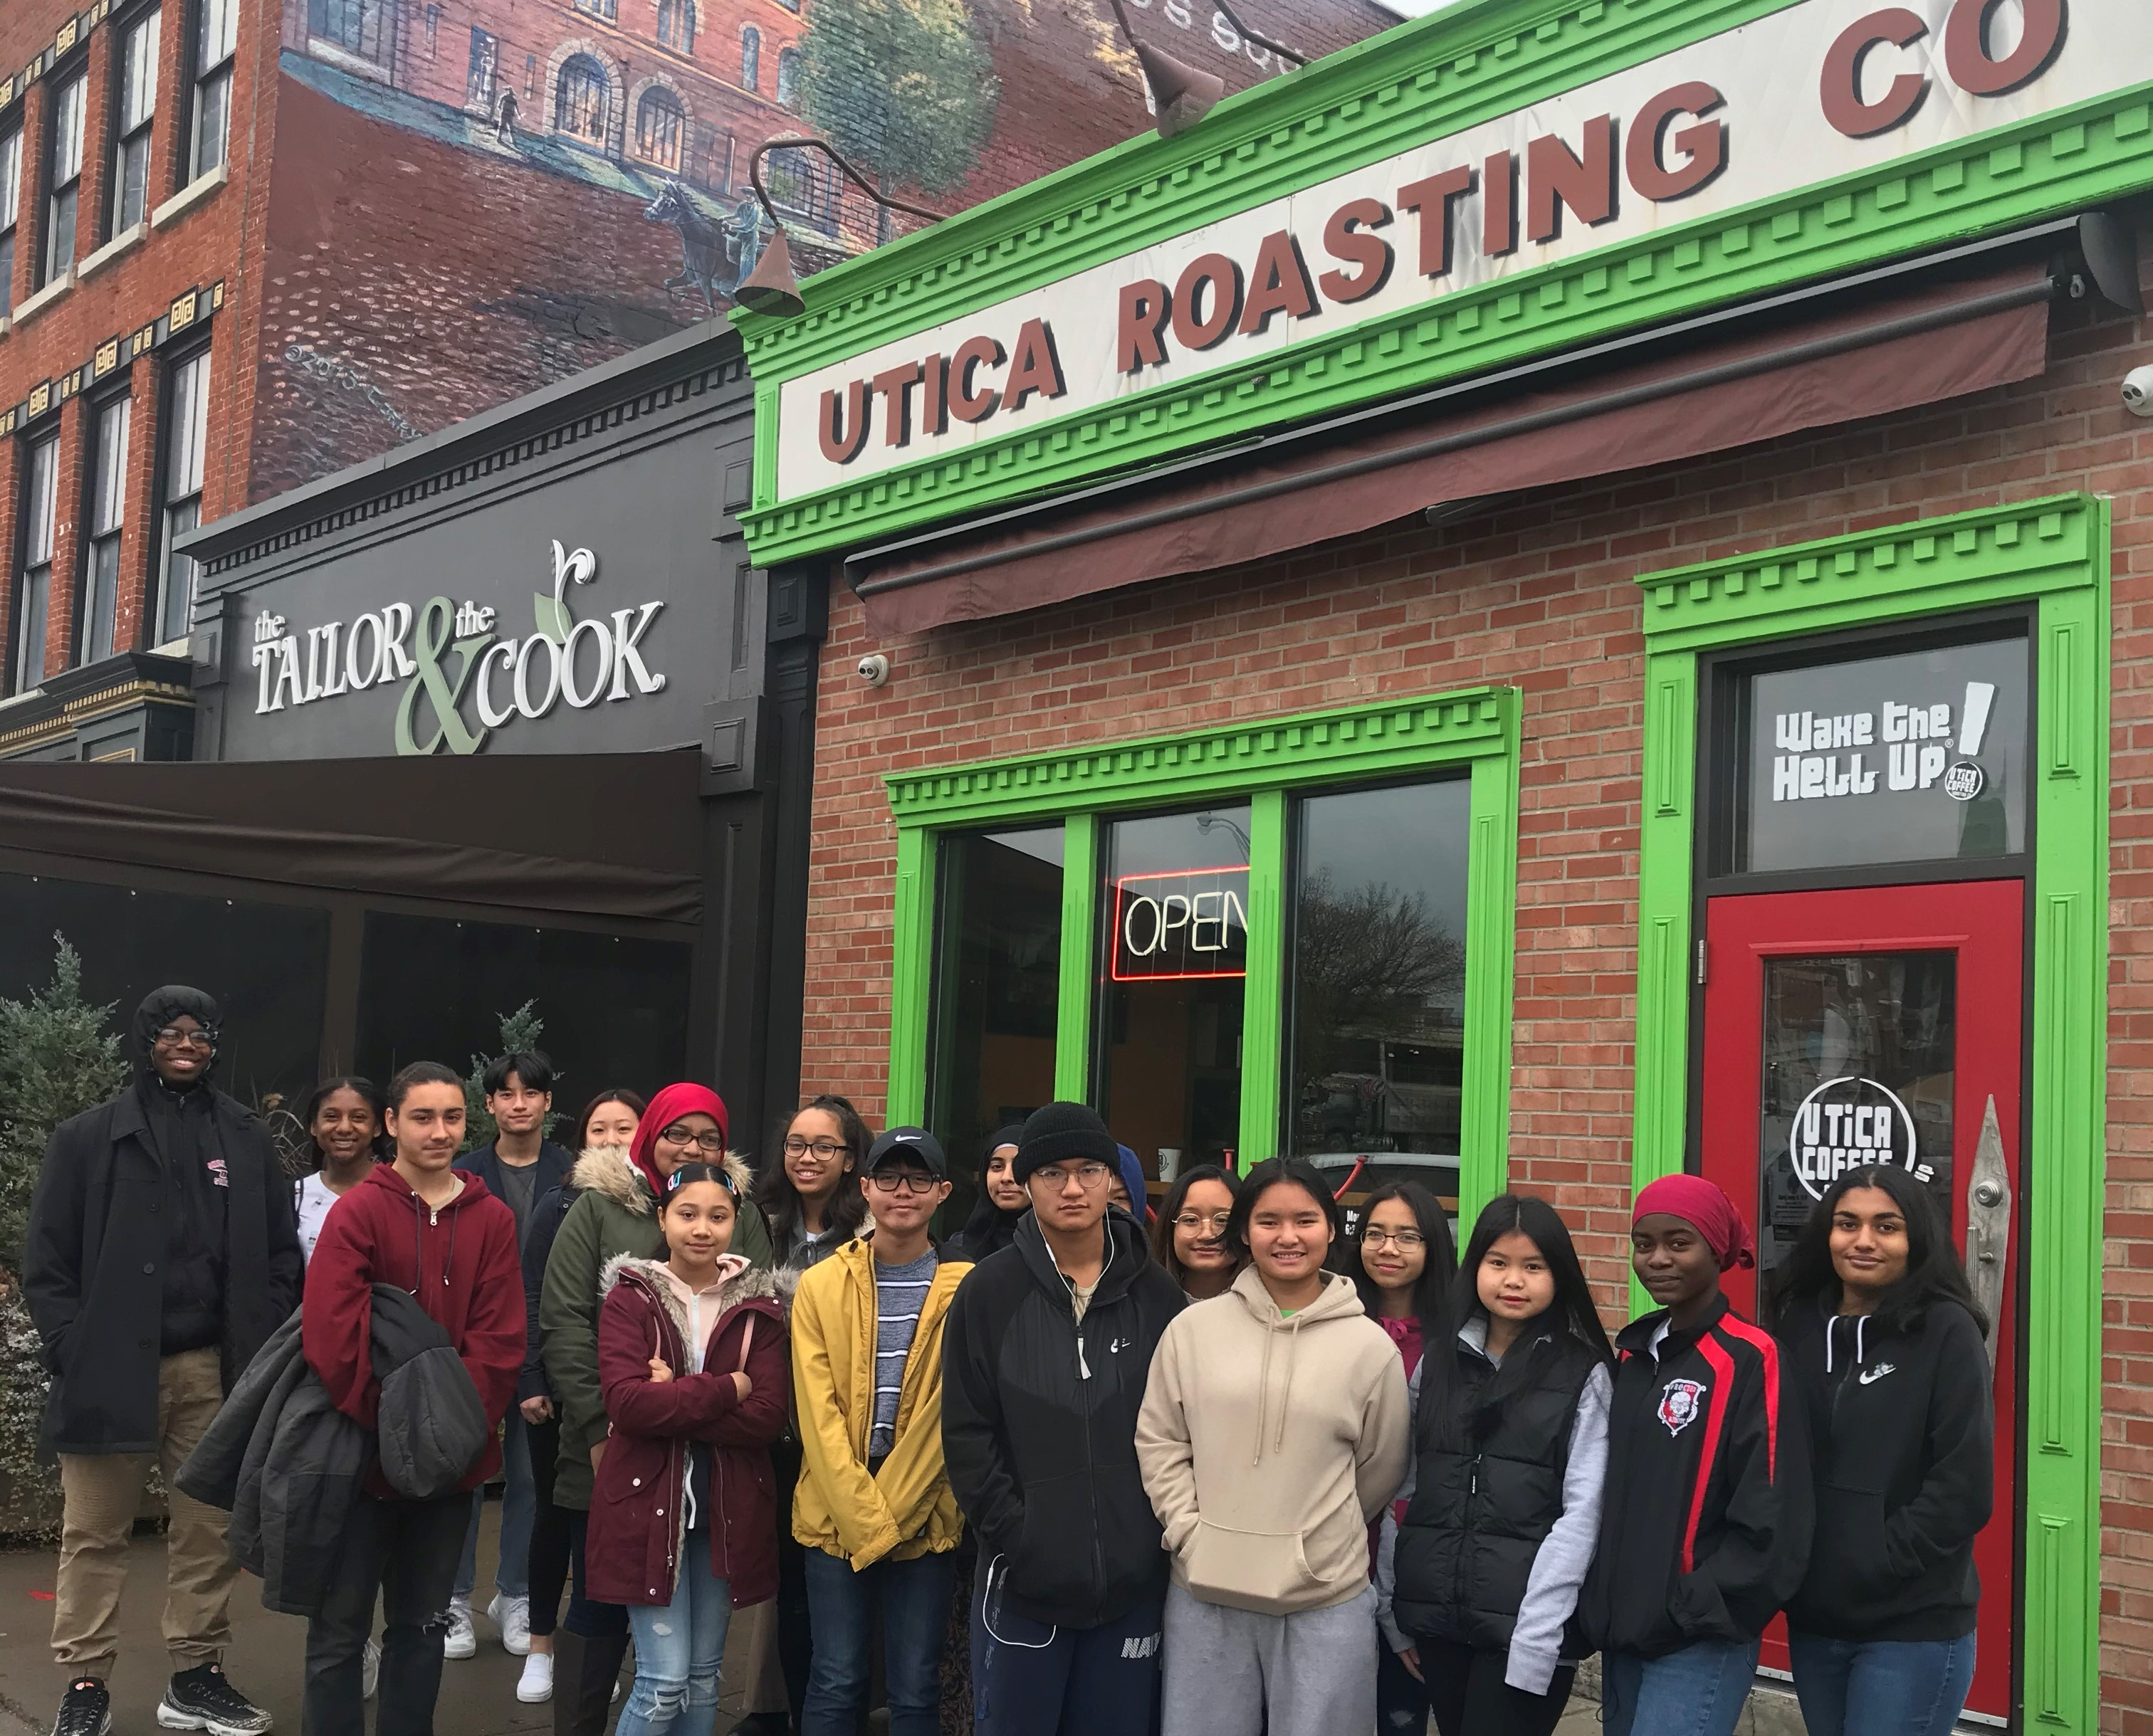 YSLPP students pose outside of Utica Coffee before their tour